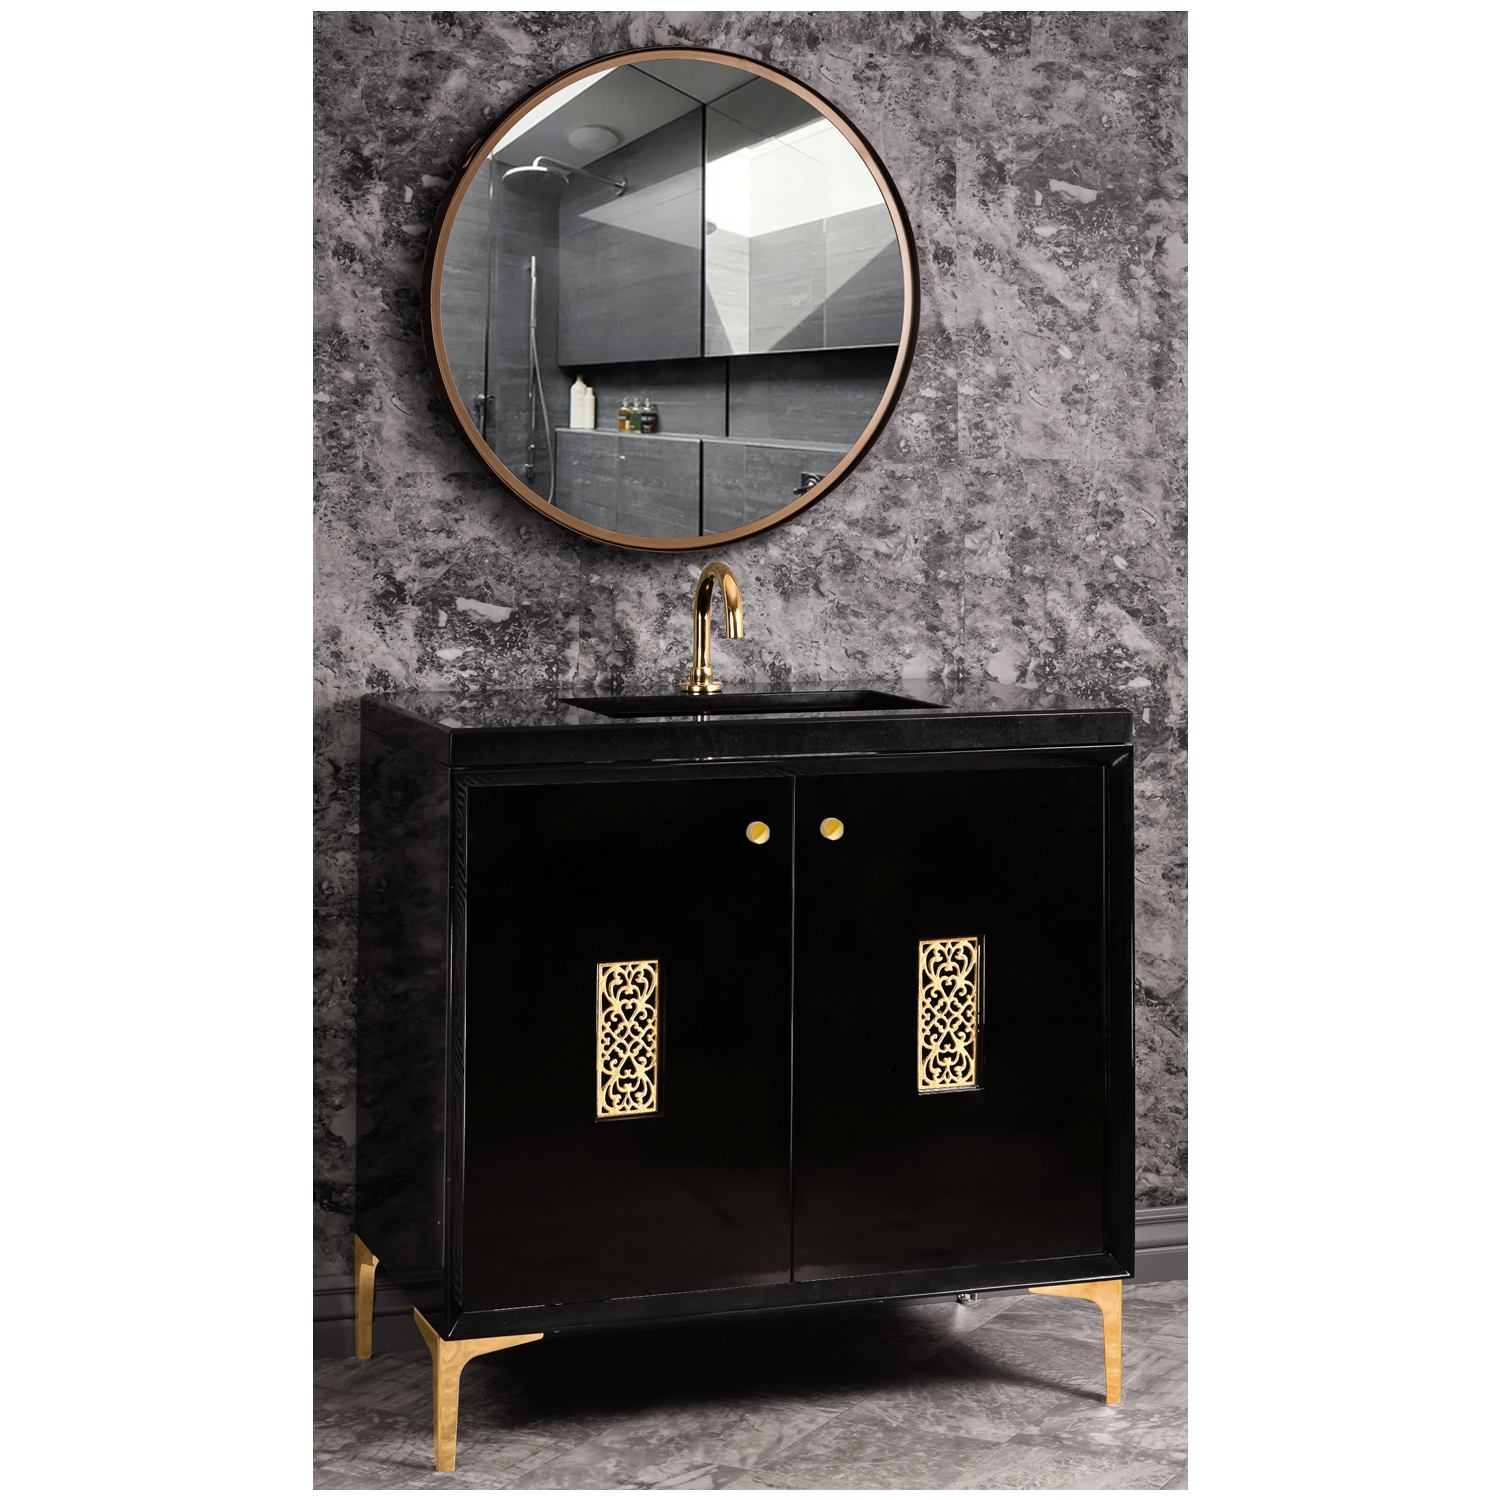 """VAN36B-012 36"""" Black Frame With Filigree - Shown with PB (Polished Brass)"""